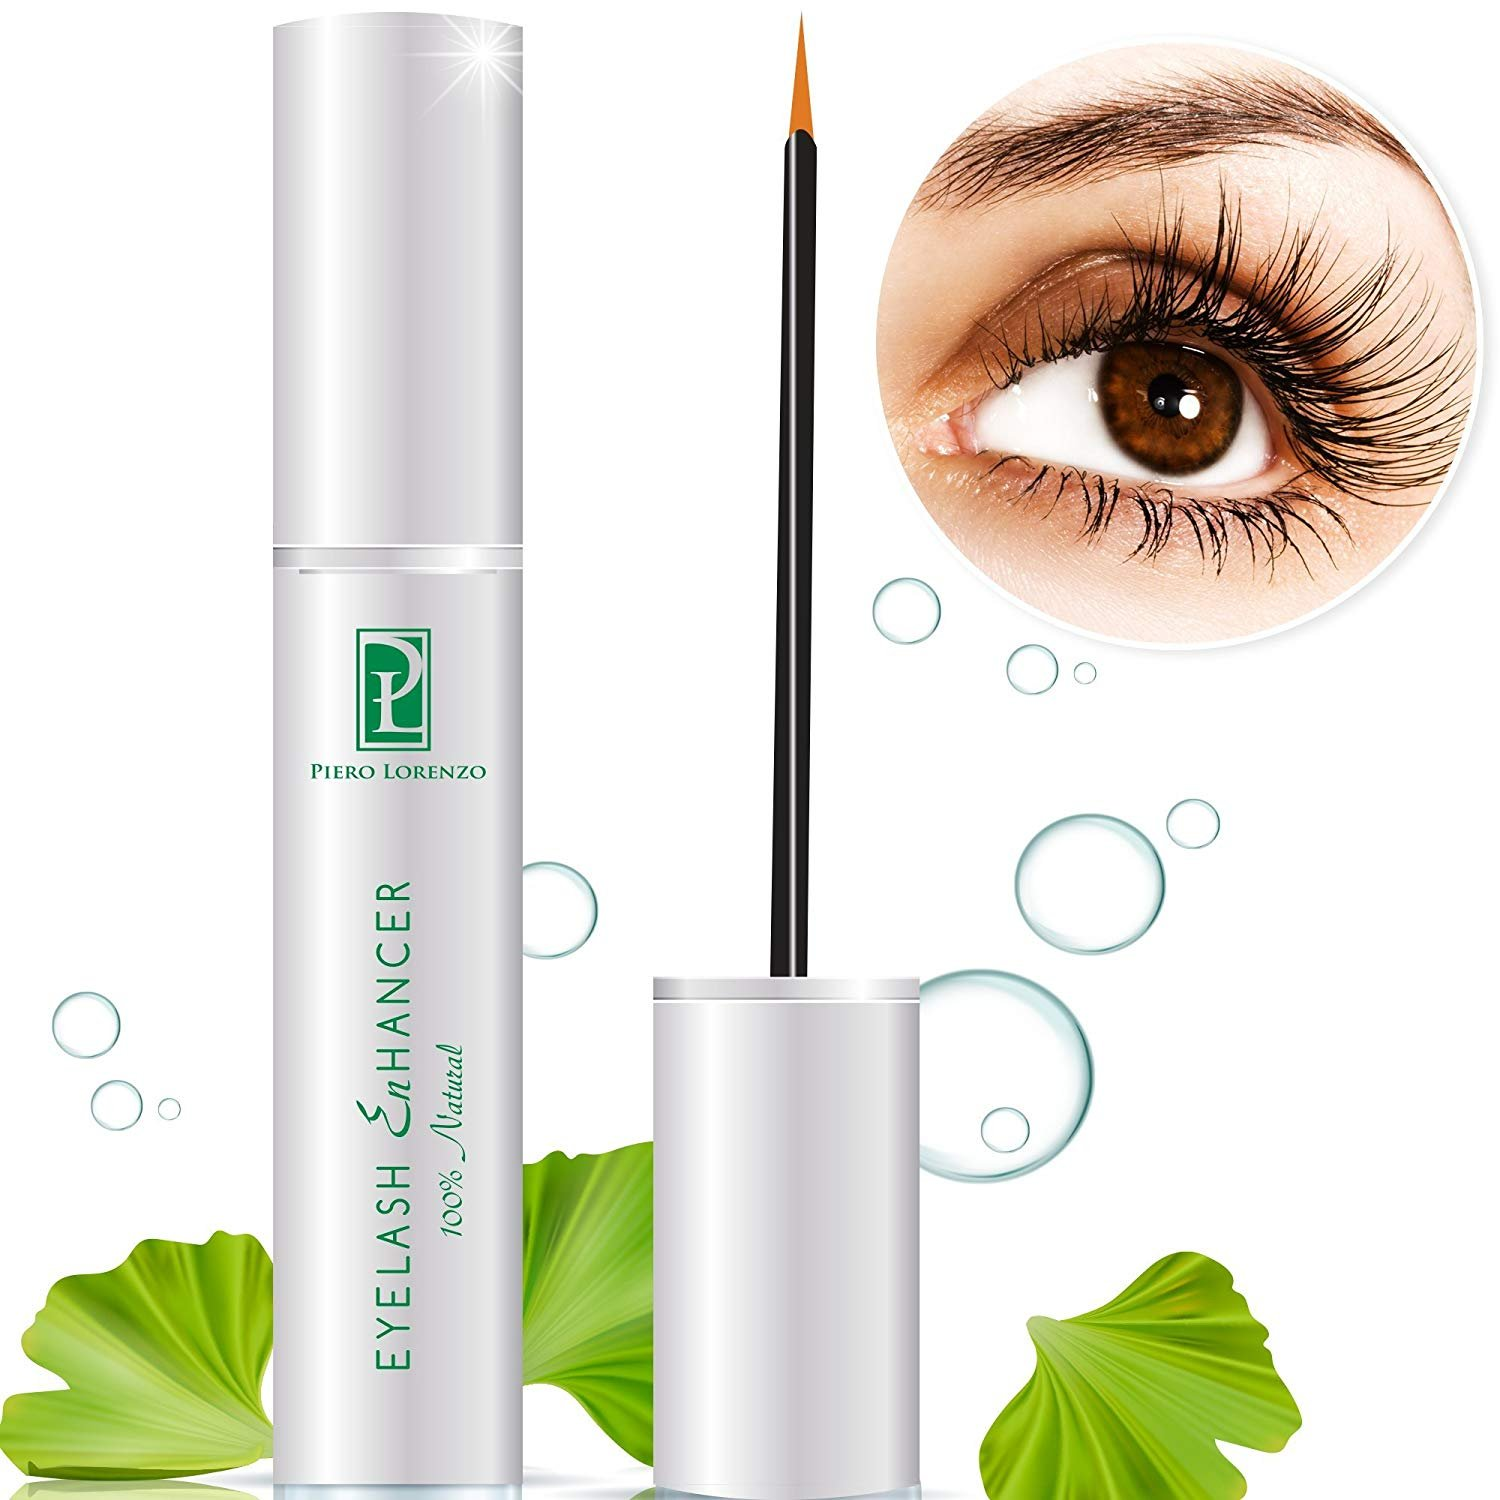 Natural Extract FEG Eyelash Growth Serum Eyelash Enhancer for Longer, Thicker, Fuller Eyelash Piero Lorenzo